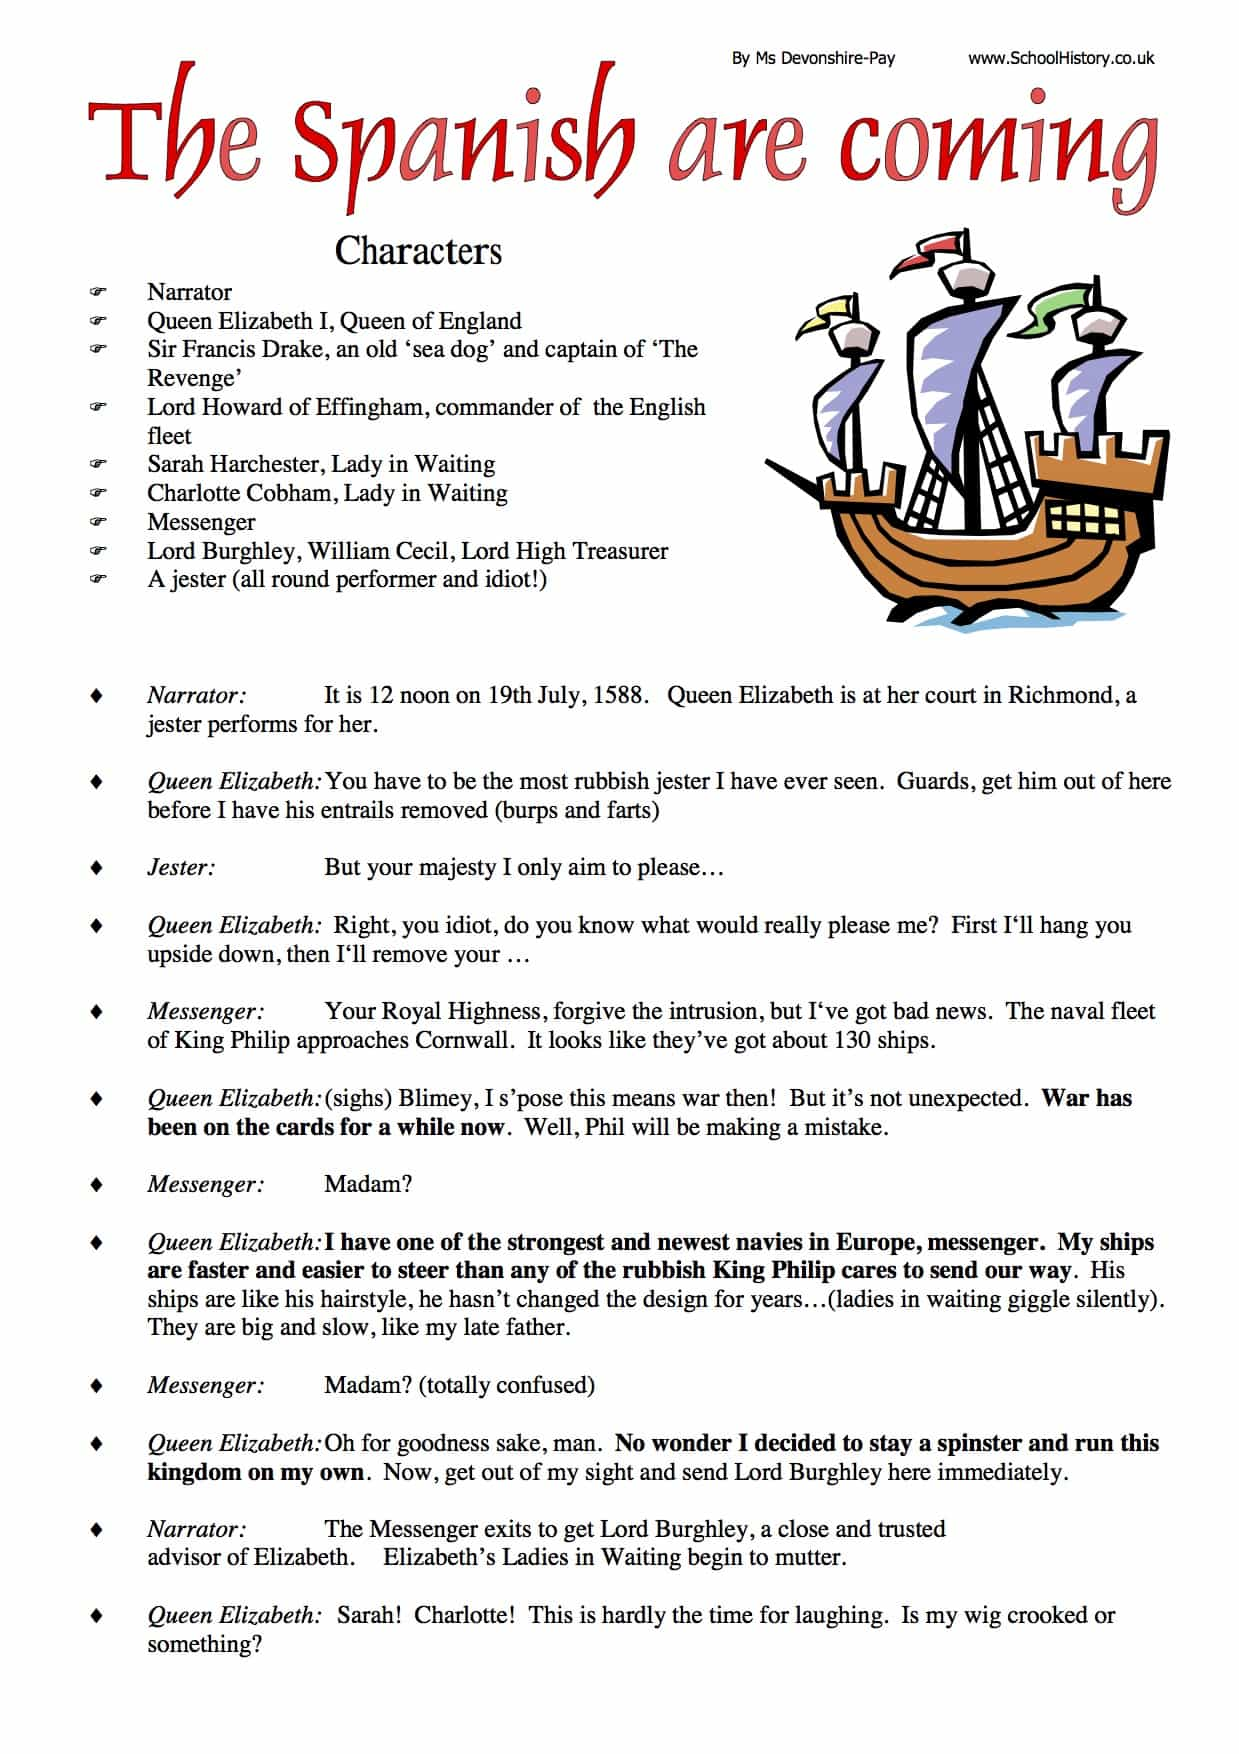 Spanish Armada Role Play Worksheet